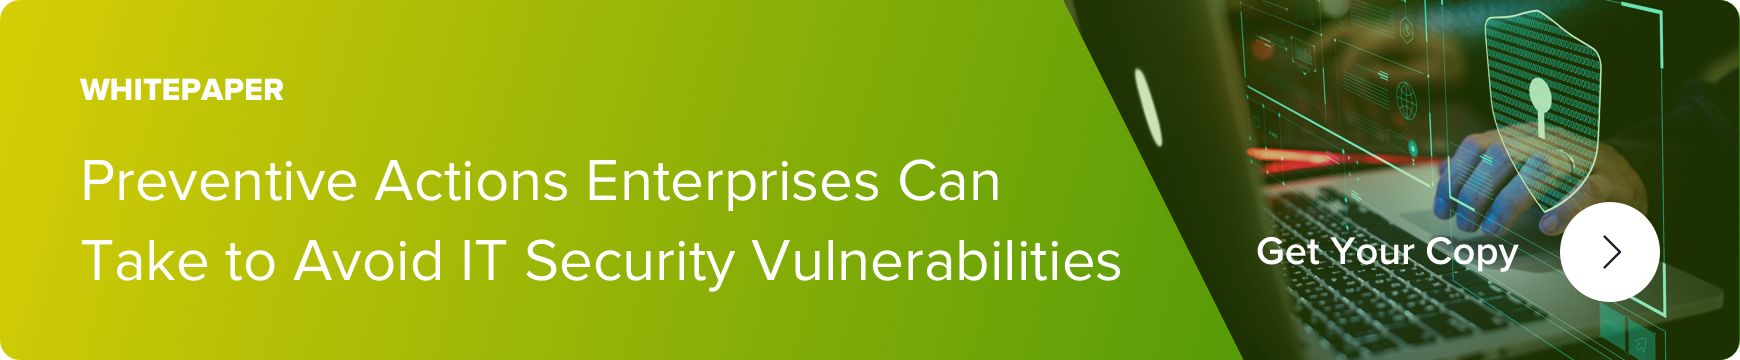 preventive actions enterprises can take to avoid it security vulnerabilities